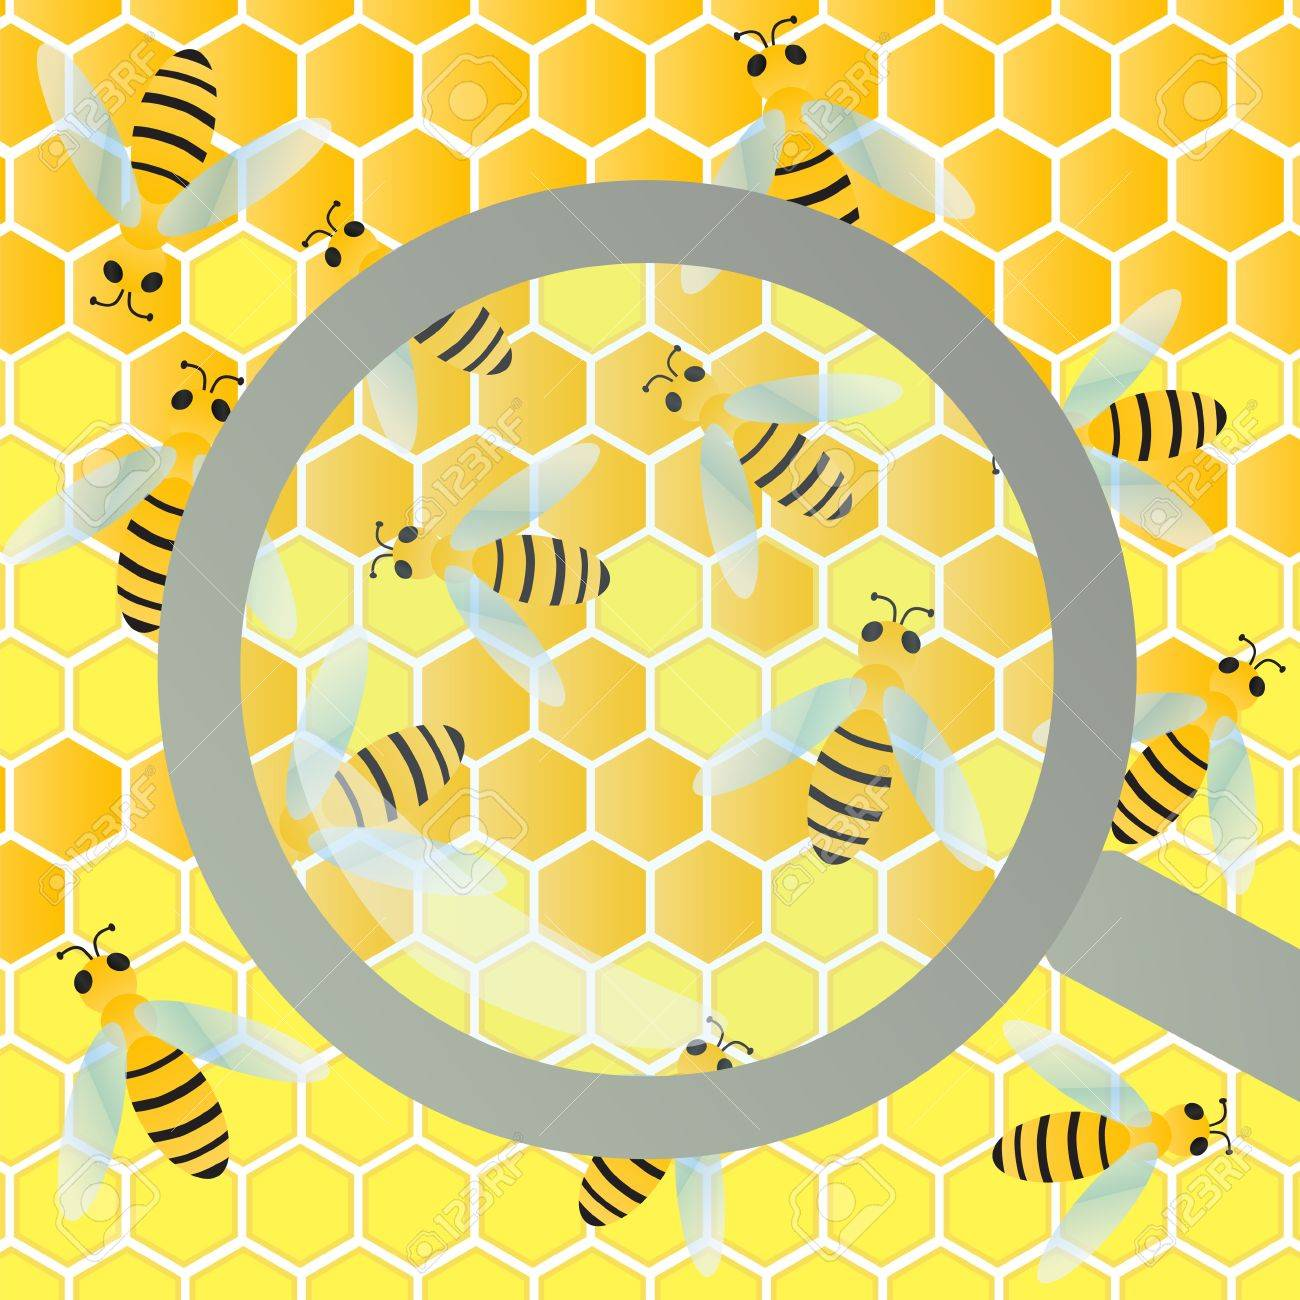 Bees hive and wax honeycomb under magnifier glass inspection illustration background vector Stock Vector - 18581070